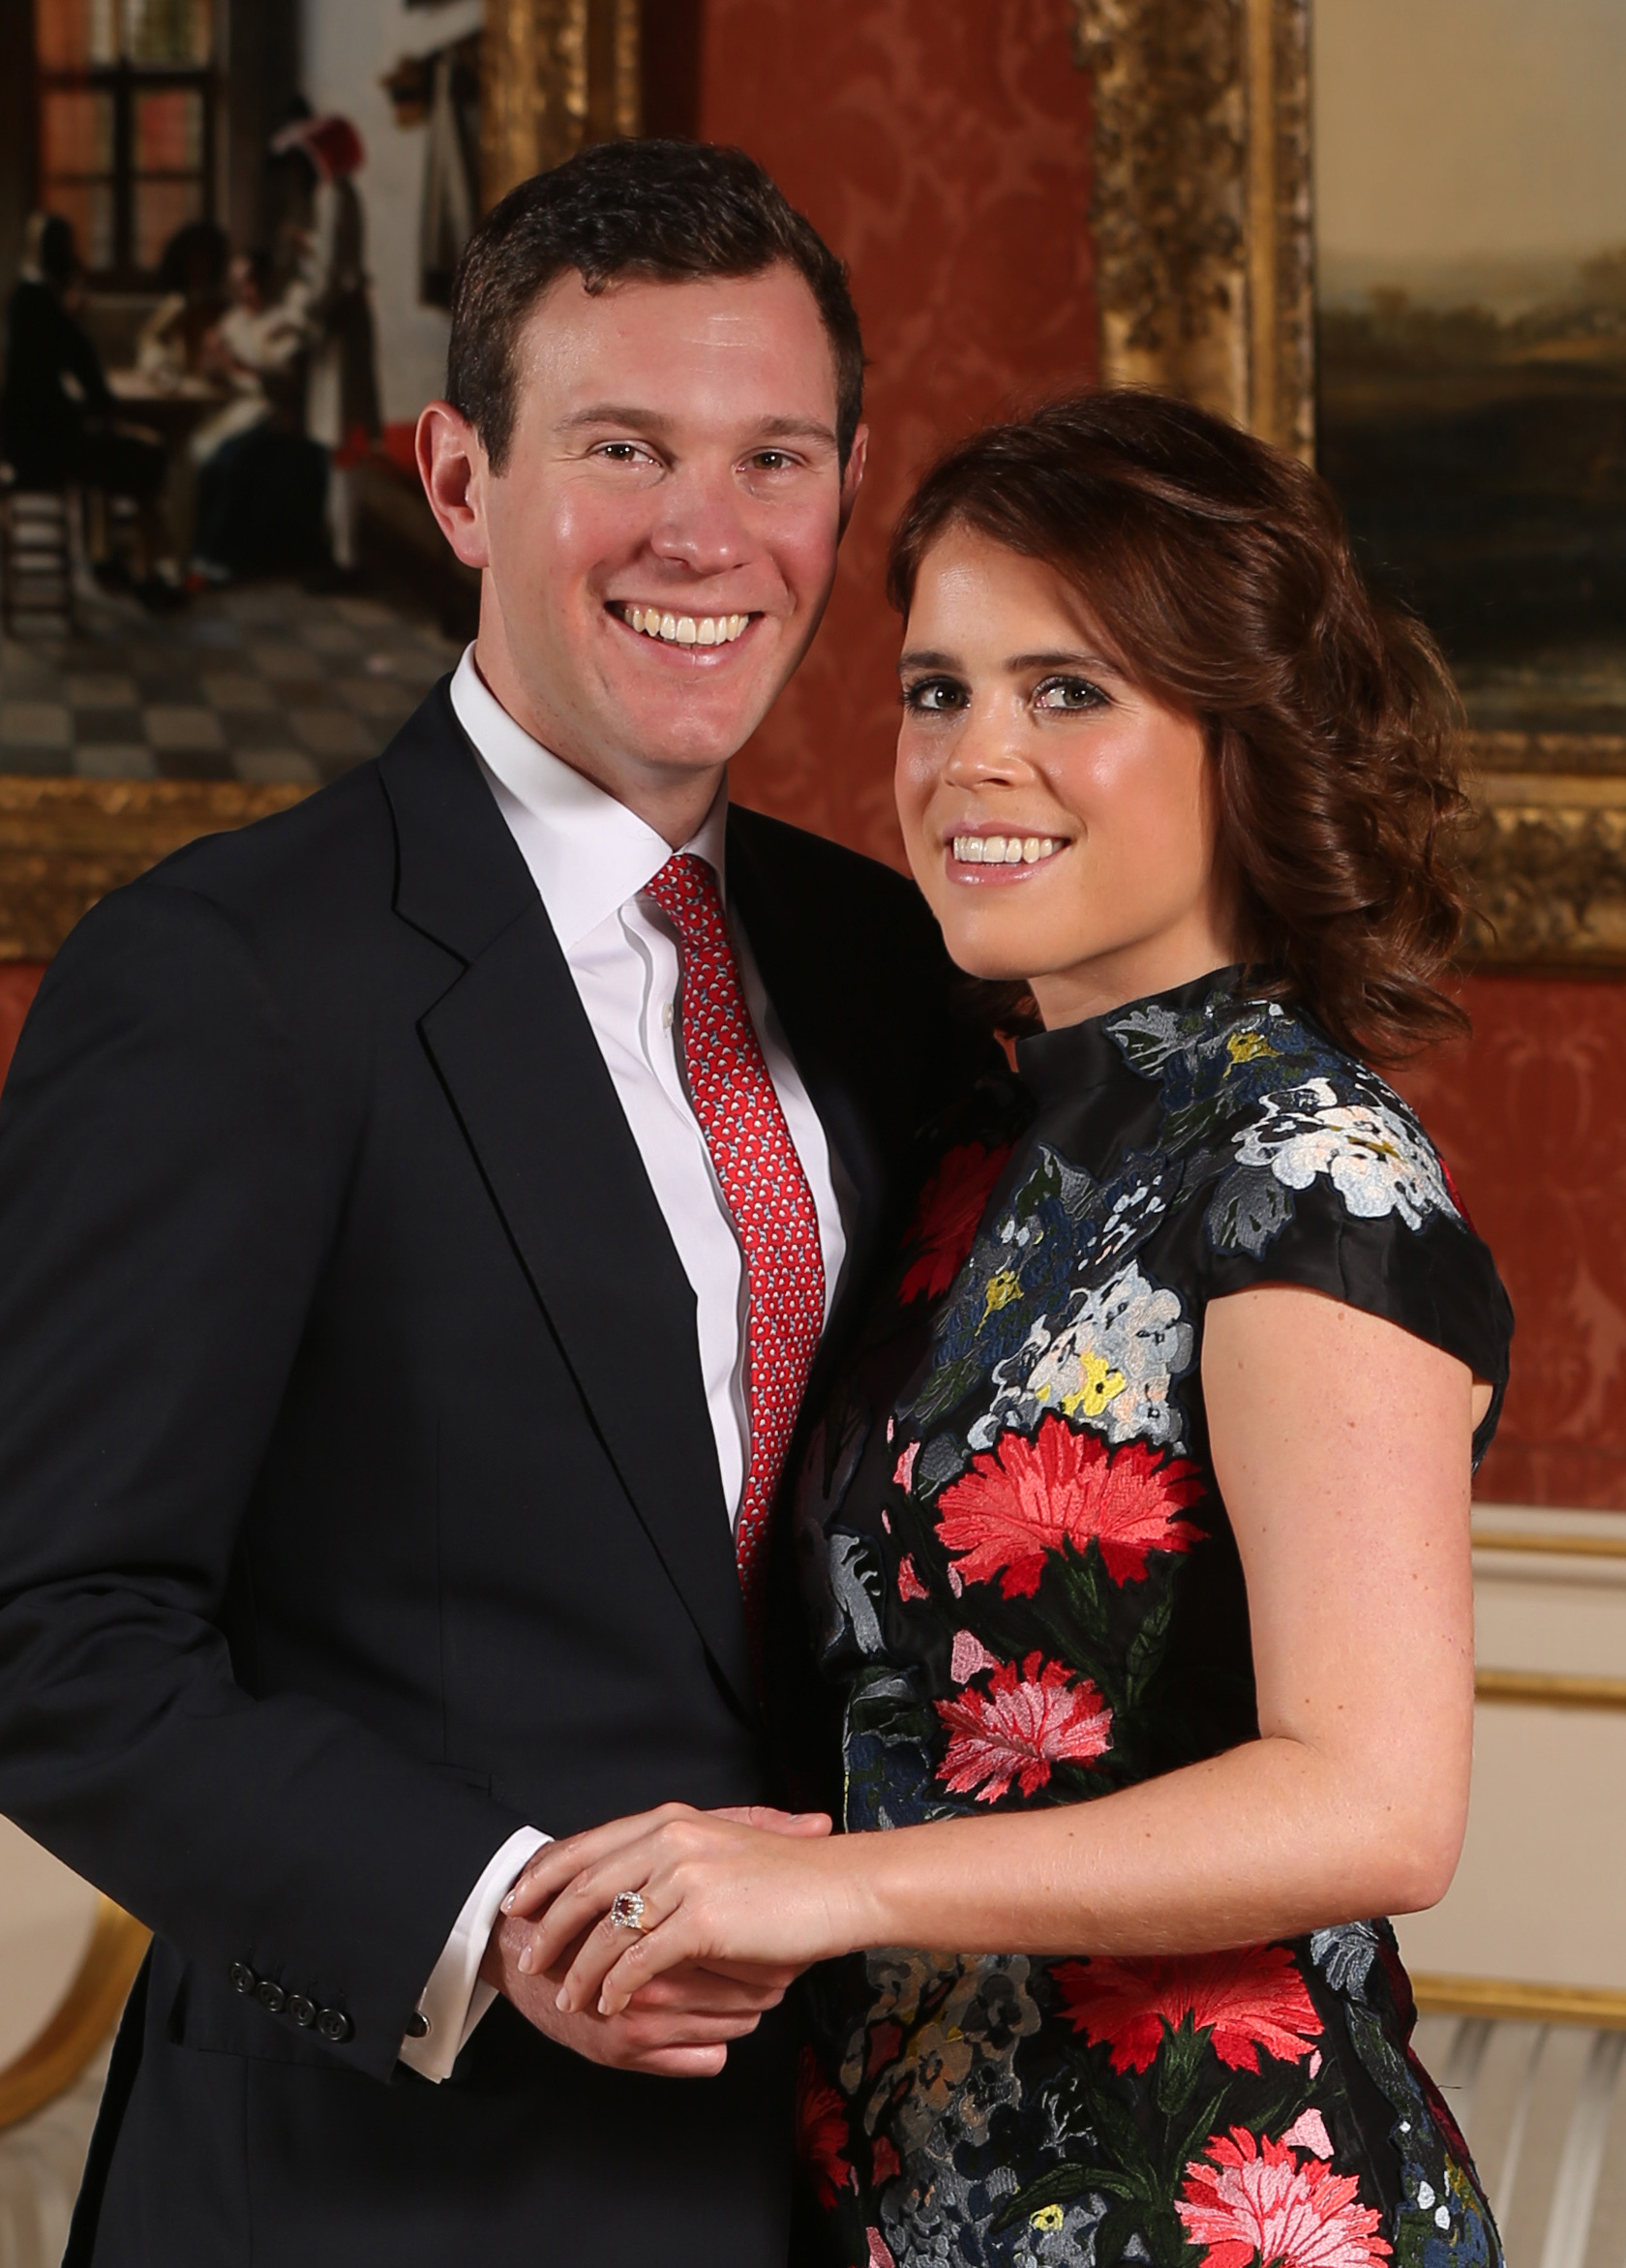 Princess Eugenie and Jack Brooksbank engaged